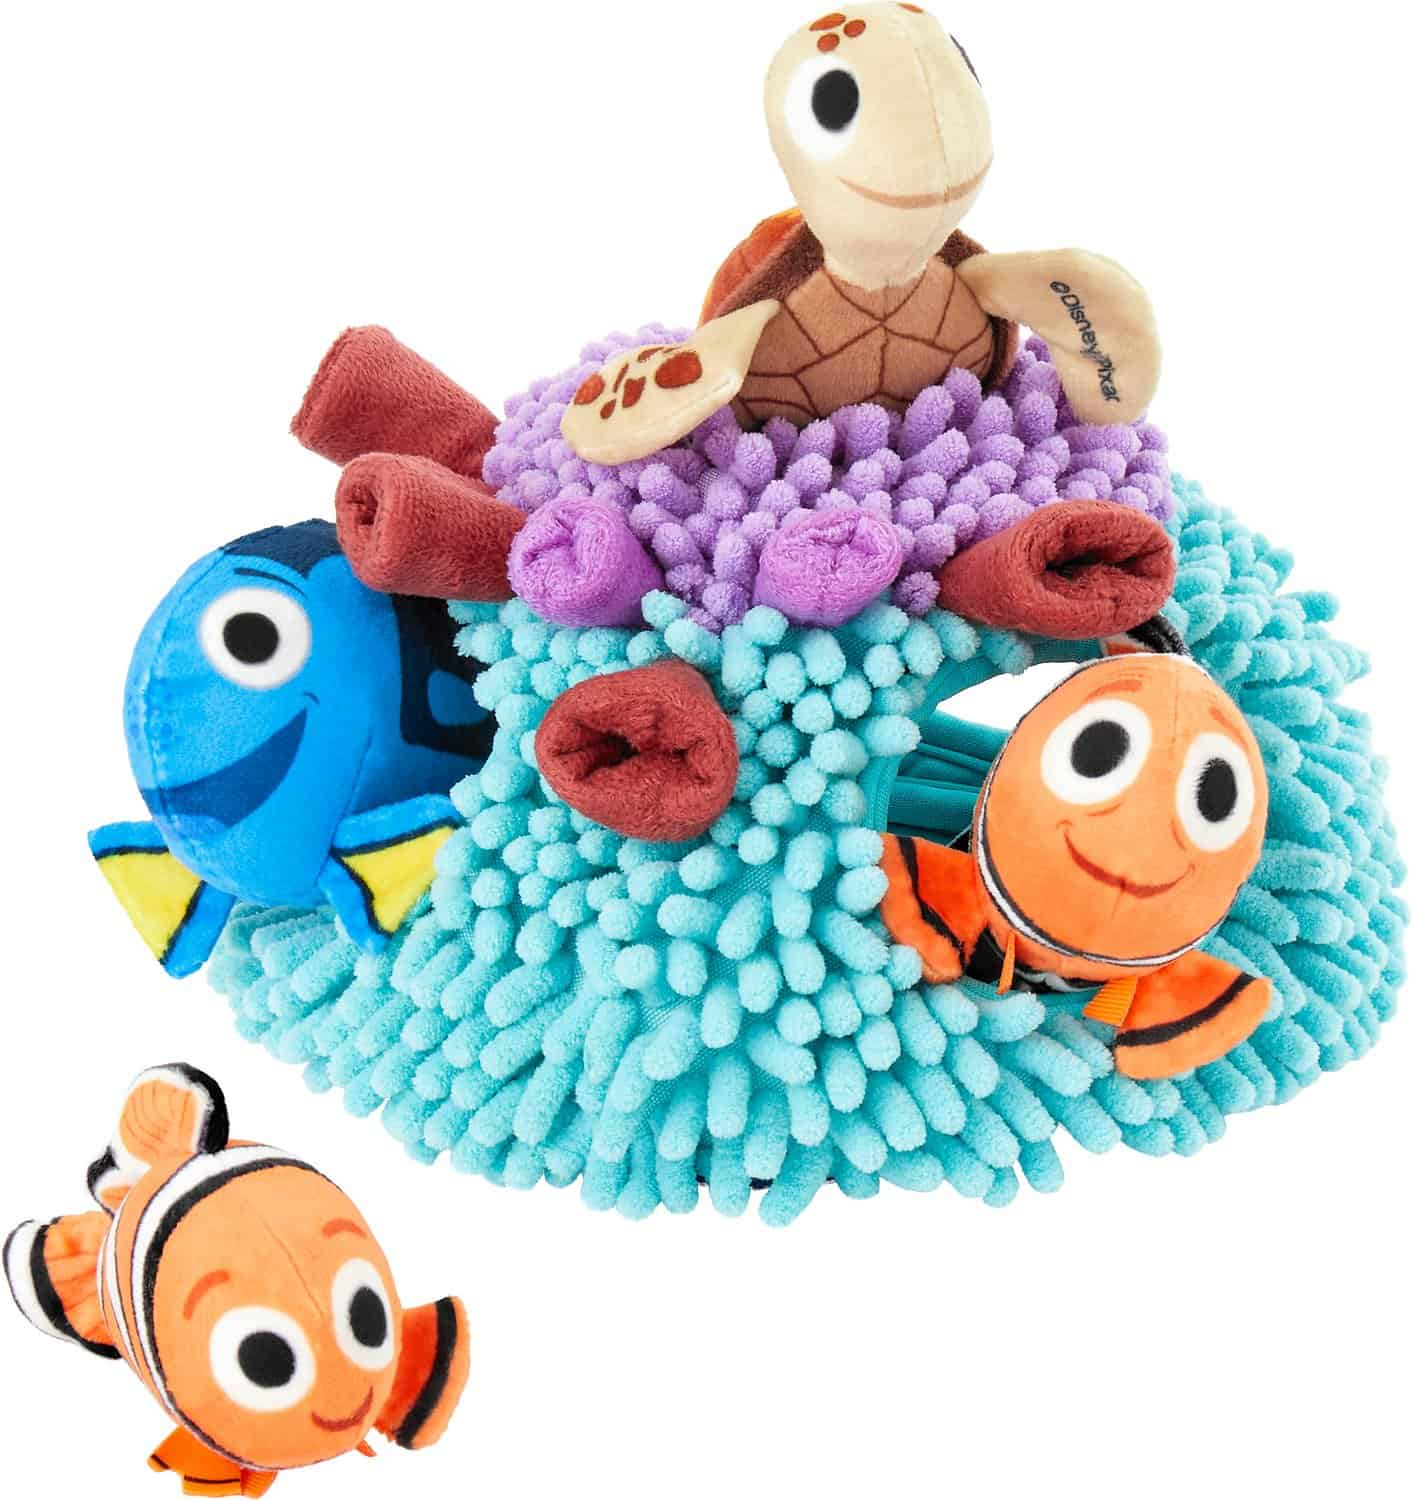 Pixar Finding Nemo's Anemone Hide and Seek Puzzle Plush Squeaky Dog Toy, part of the Chewy Disney dog collection.